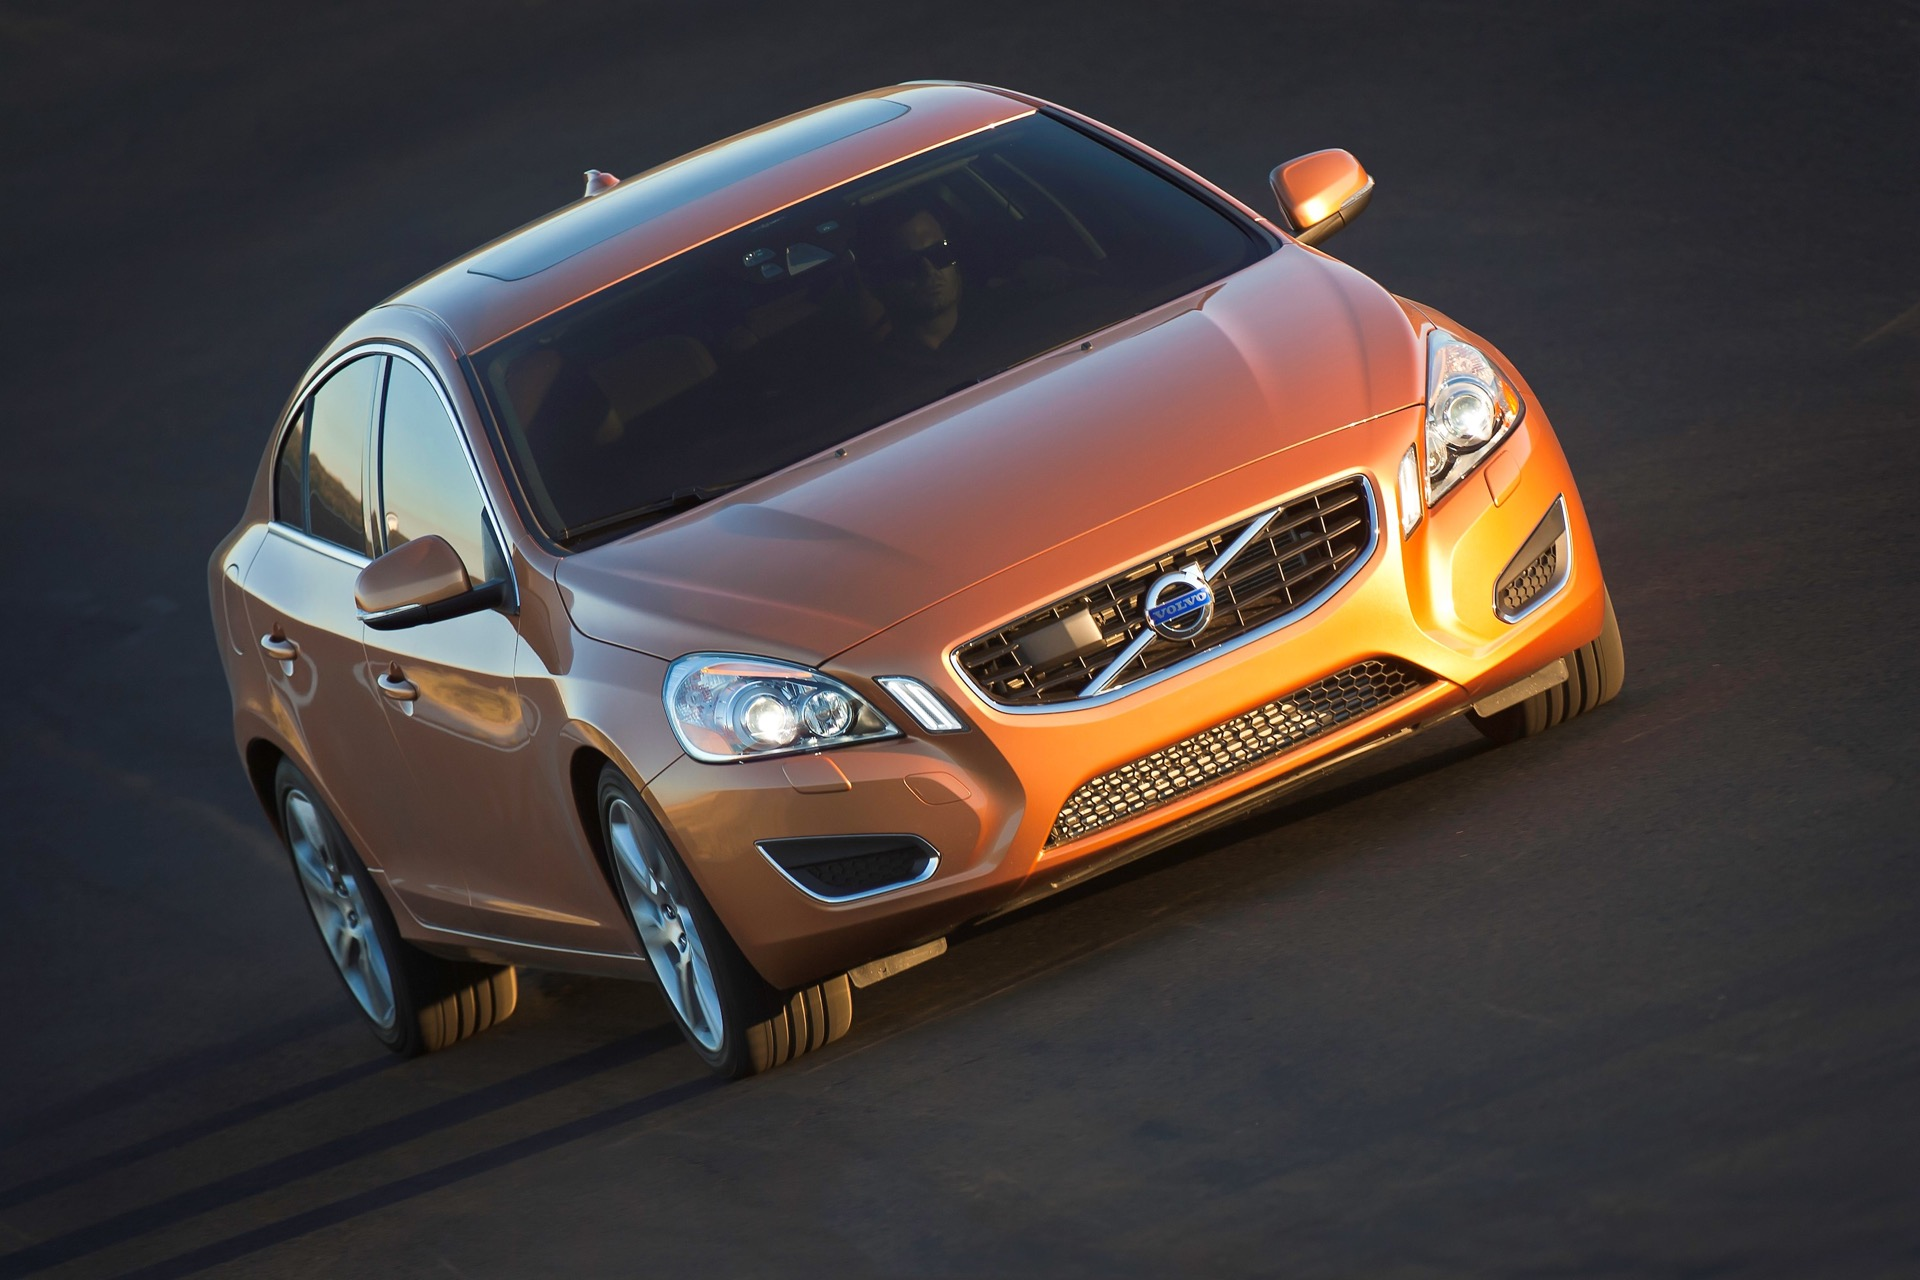 S60 T6 Awd Driving Action10 -  Volvo